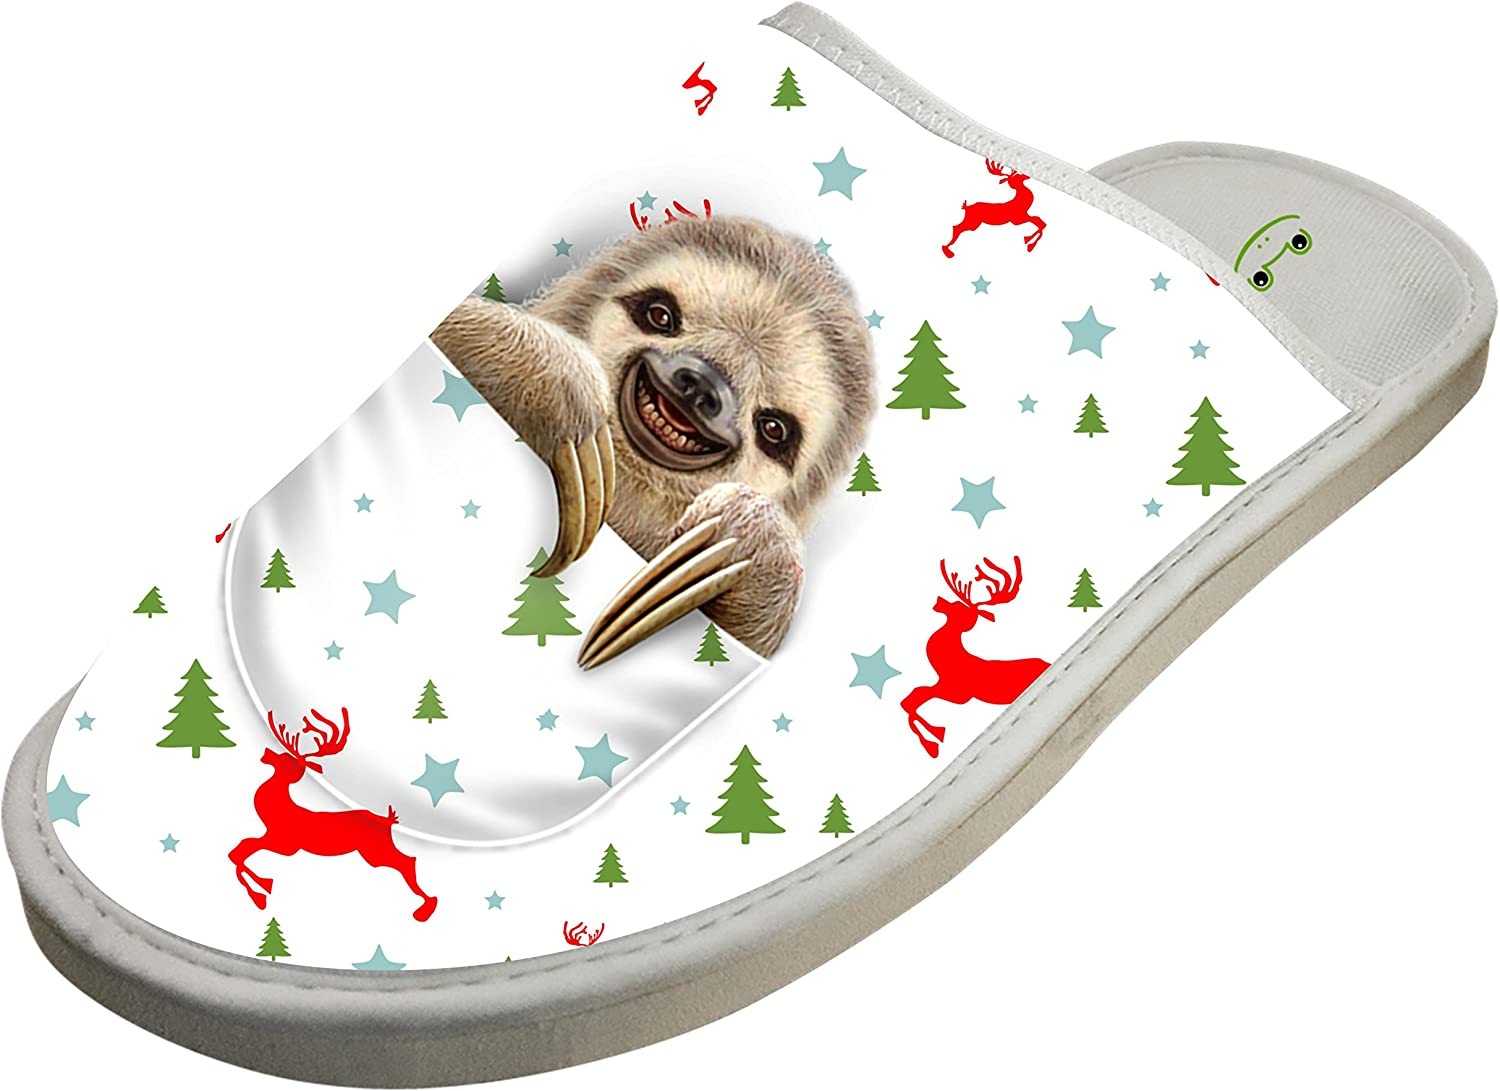 KOUY Pocket Sloth Closed Toe Cotton Slippers Warm Soft Indoor Shoes Non-watertight